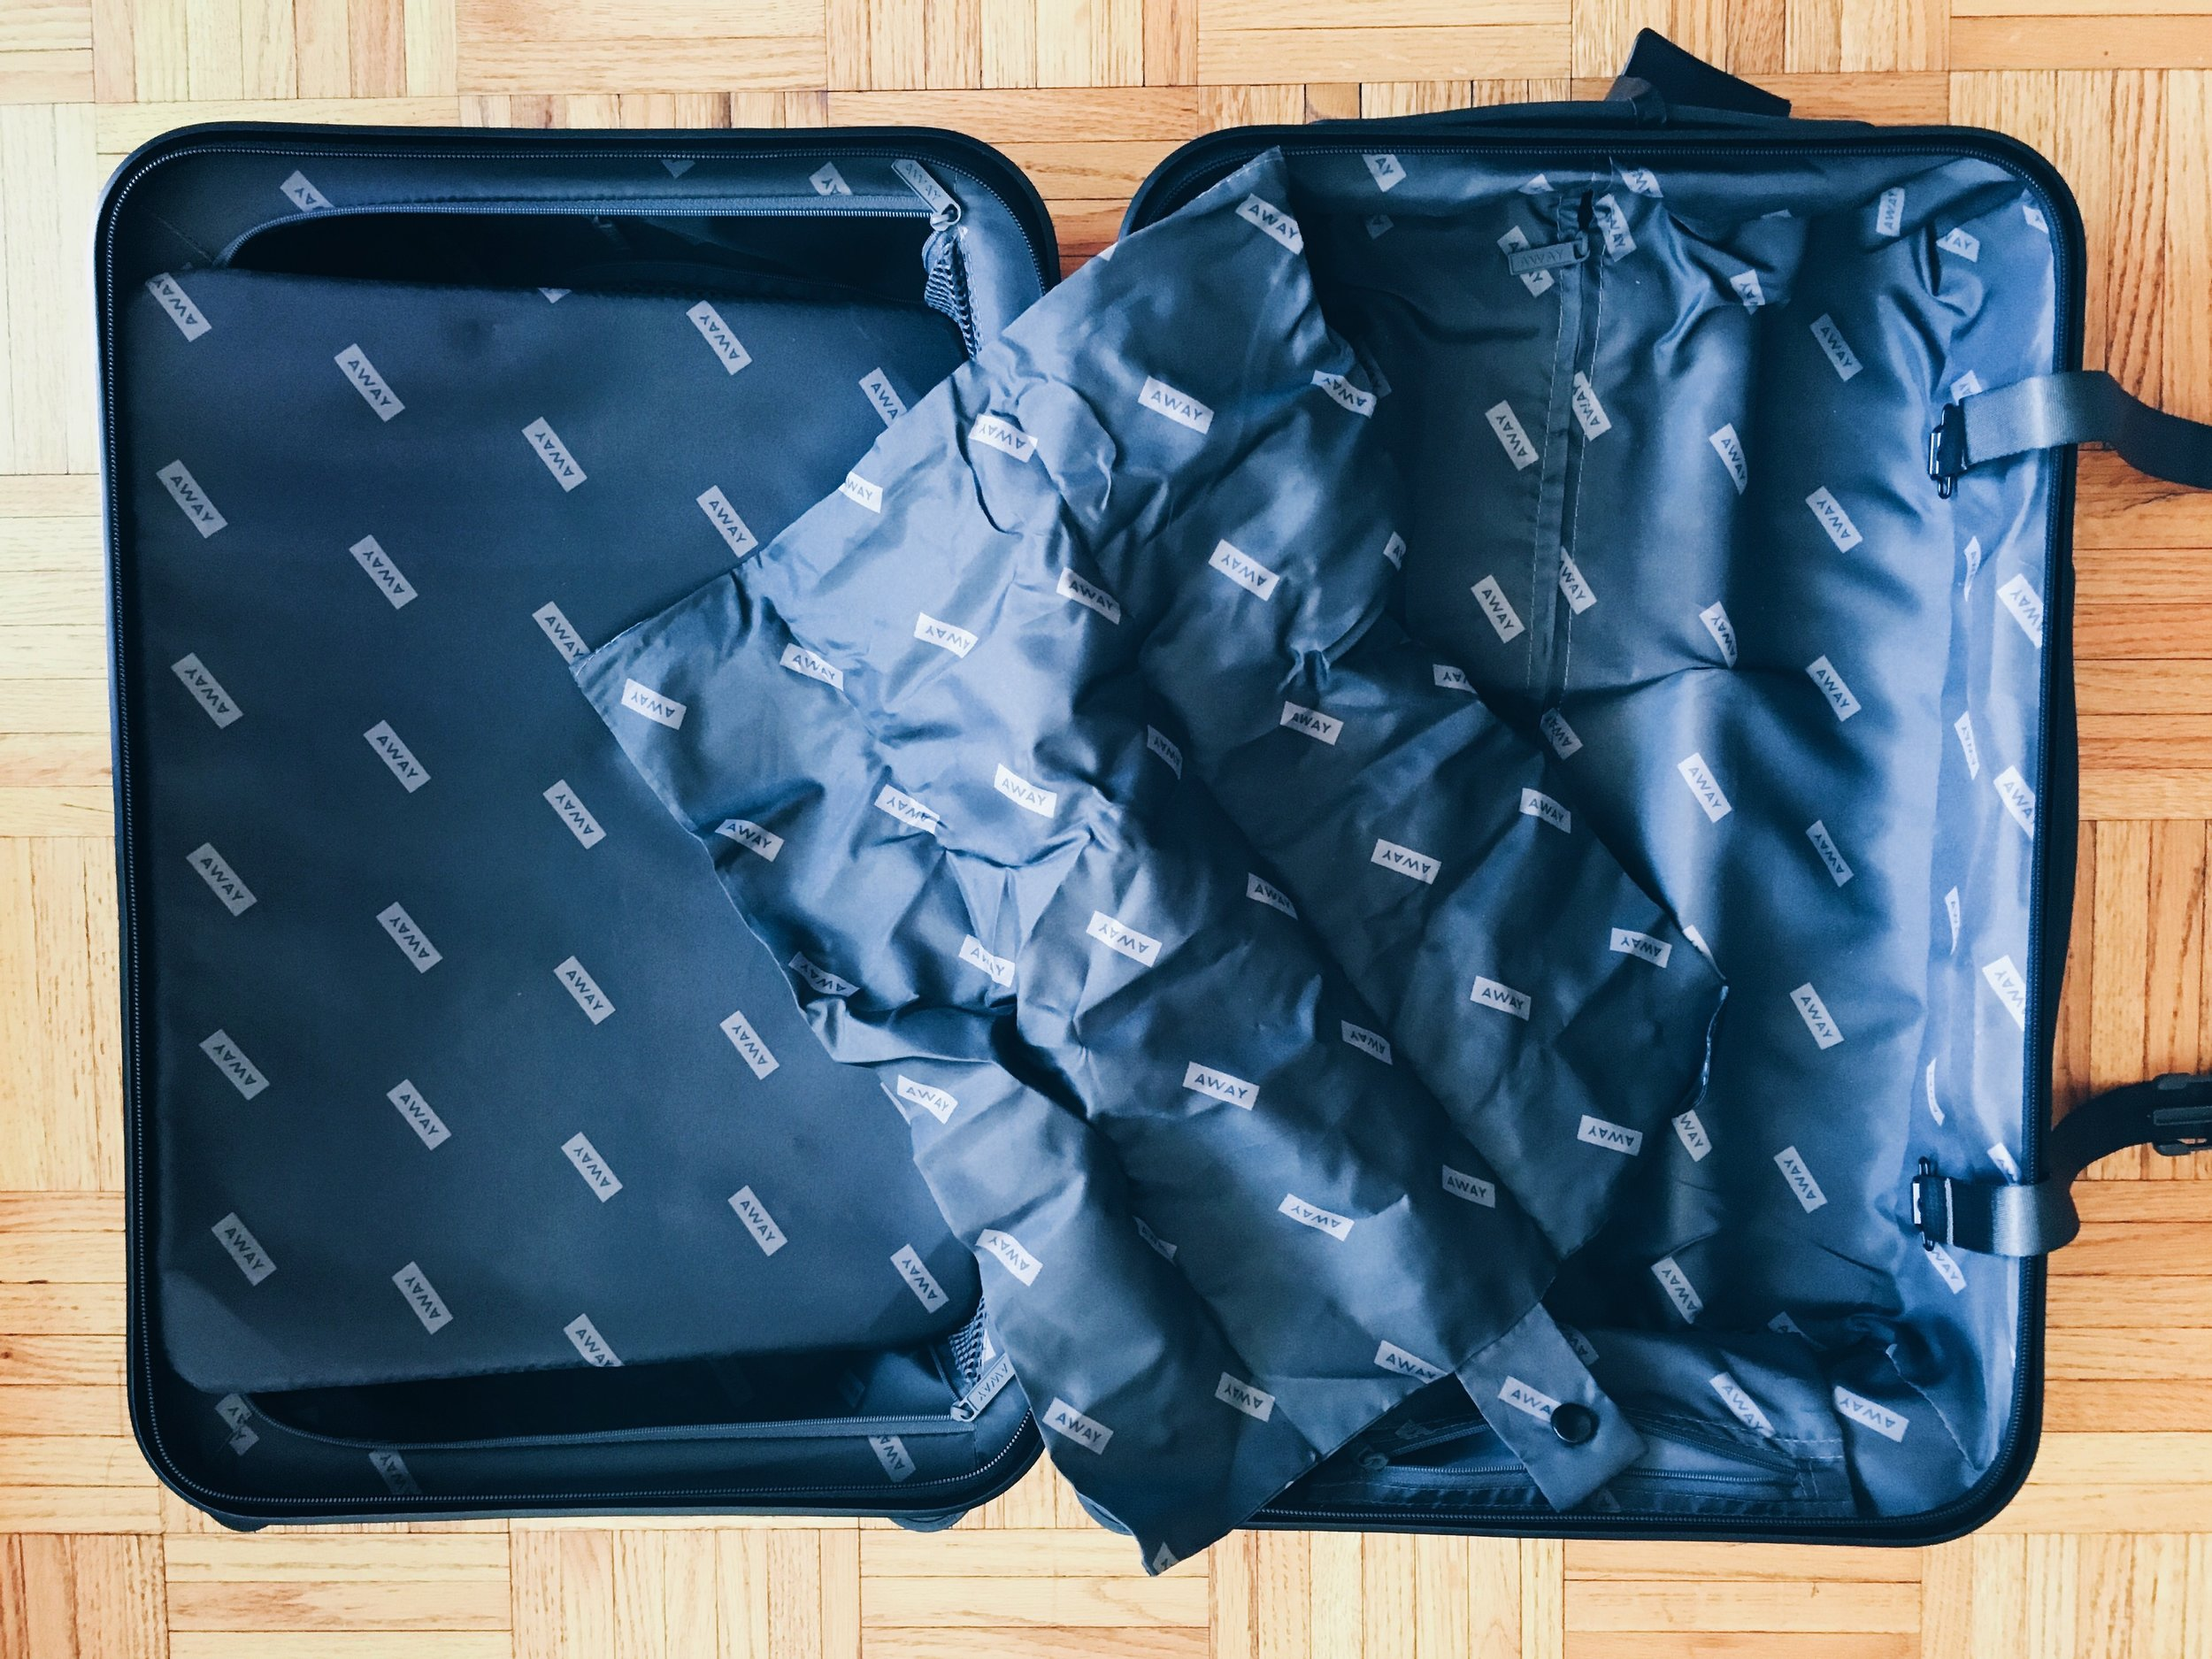 Laundry Bag in Carry-On Luggage